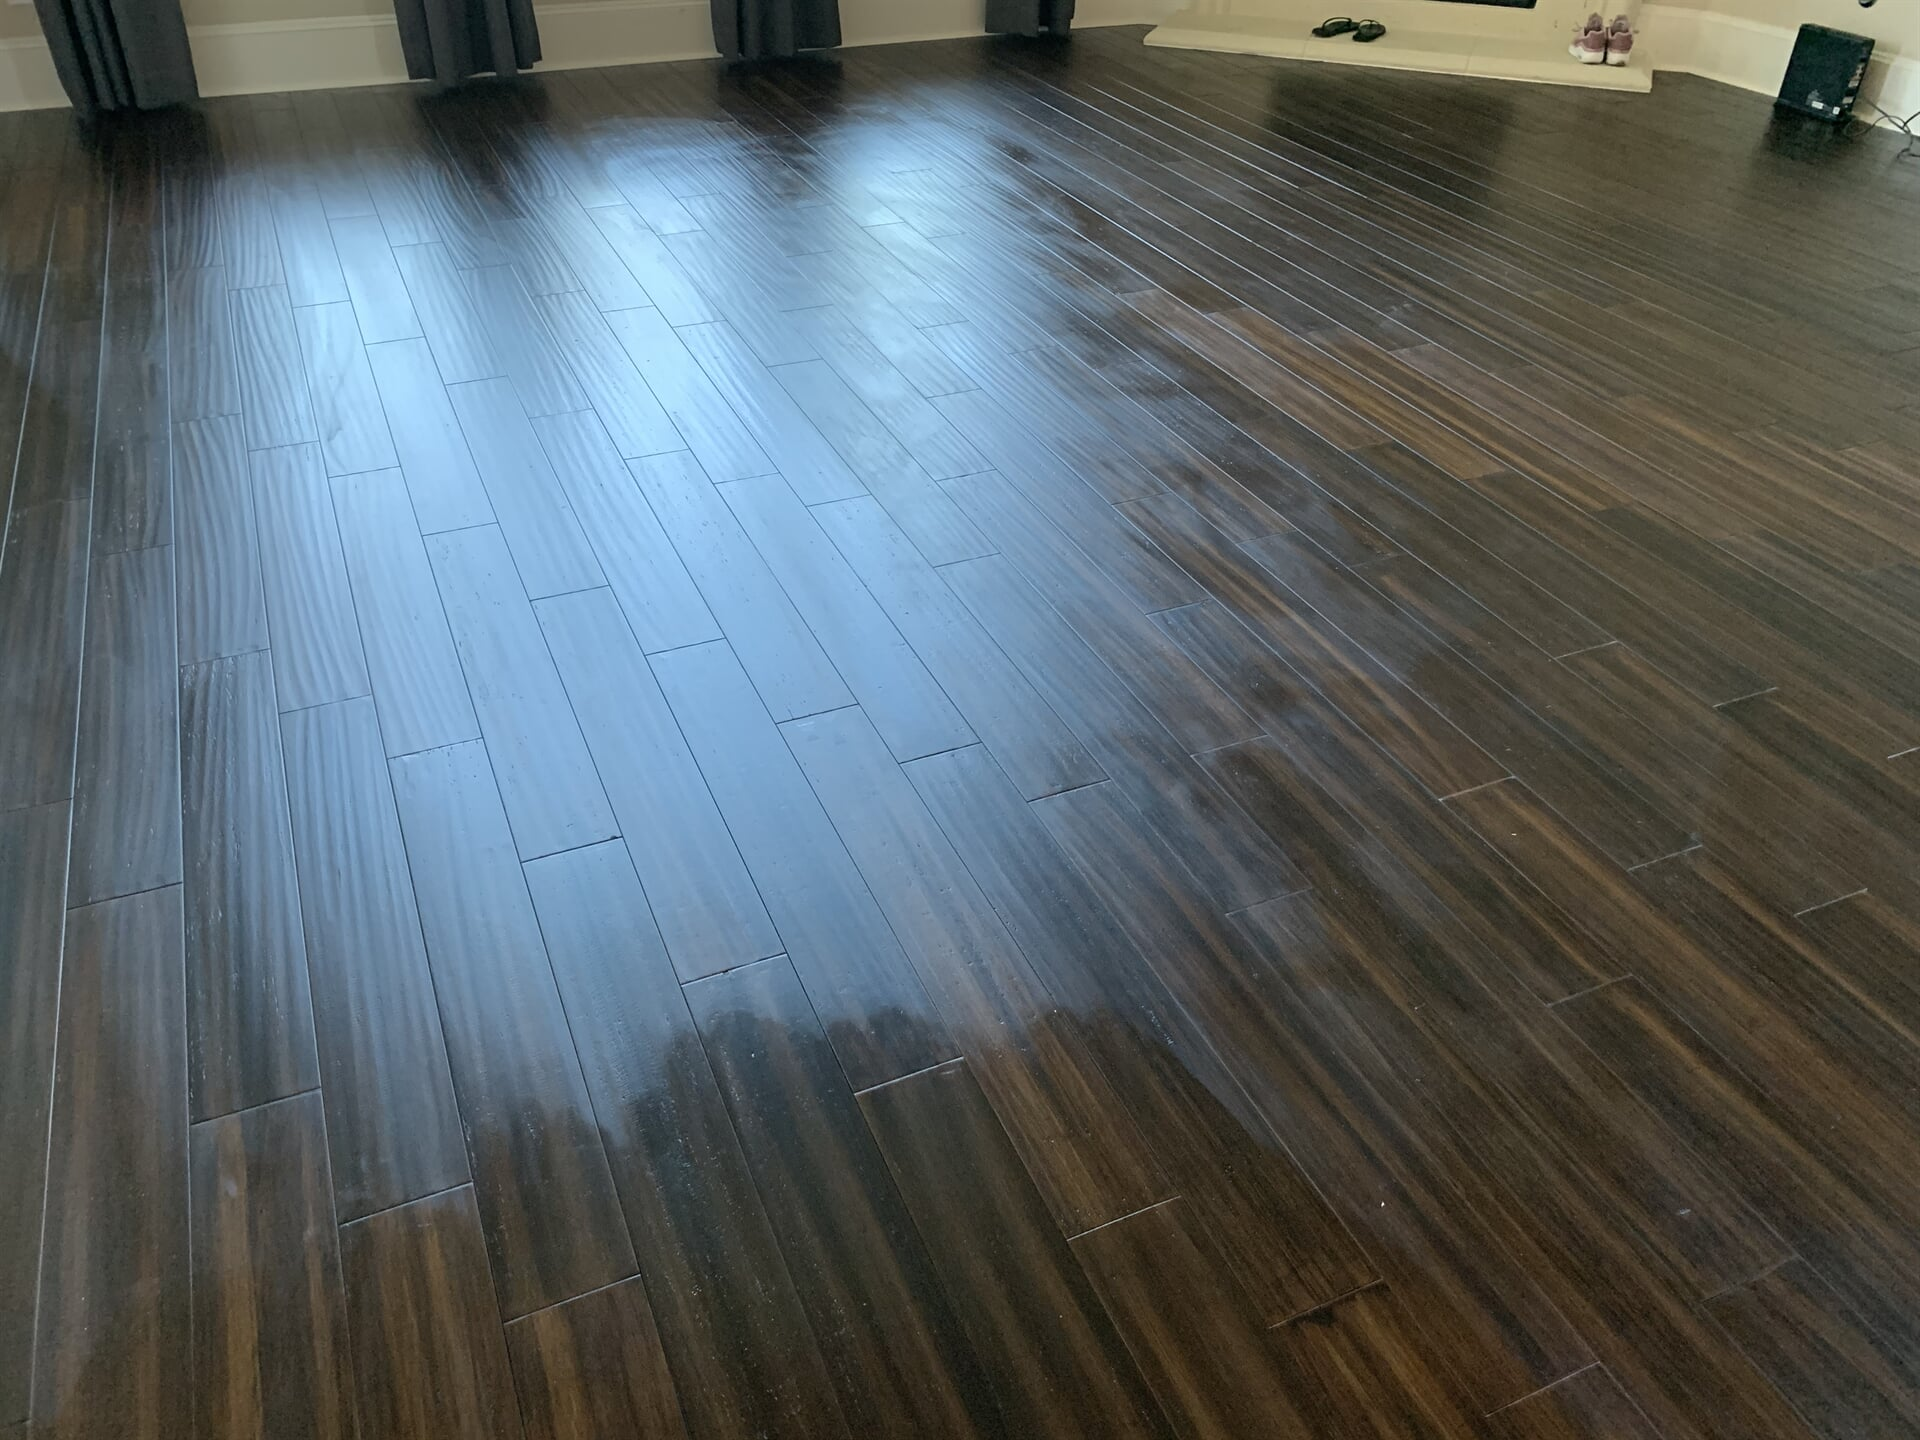 Bamboo flooring from Houston Floor Installation Services in Conroe, TX